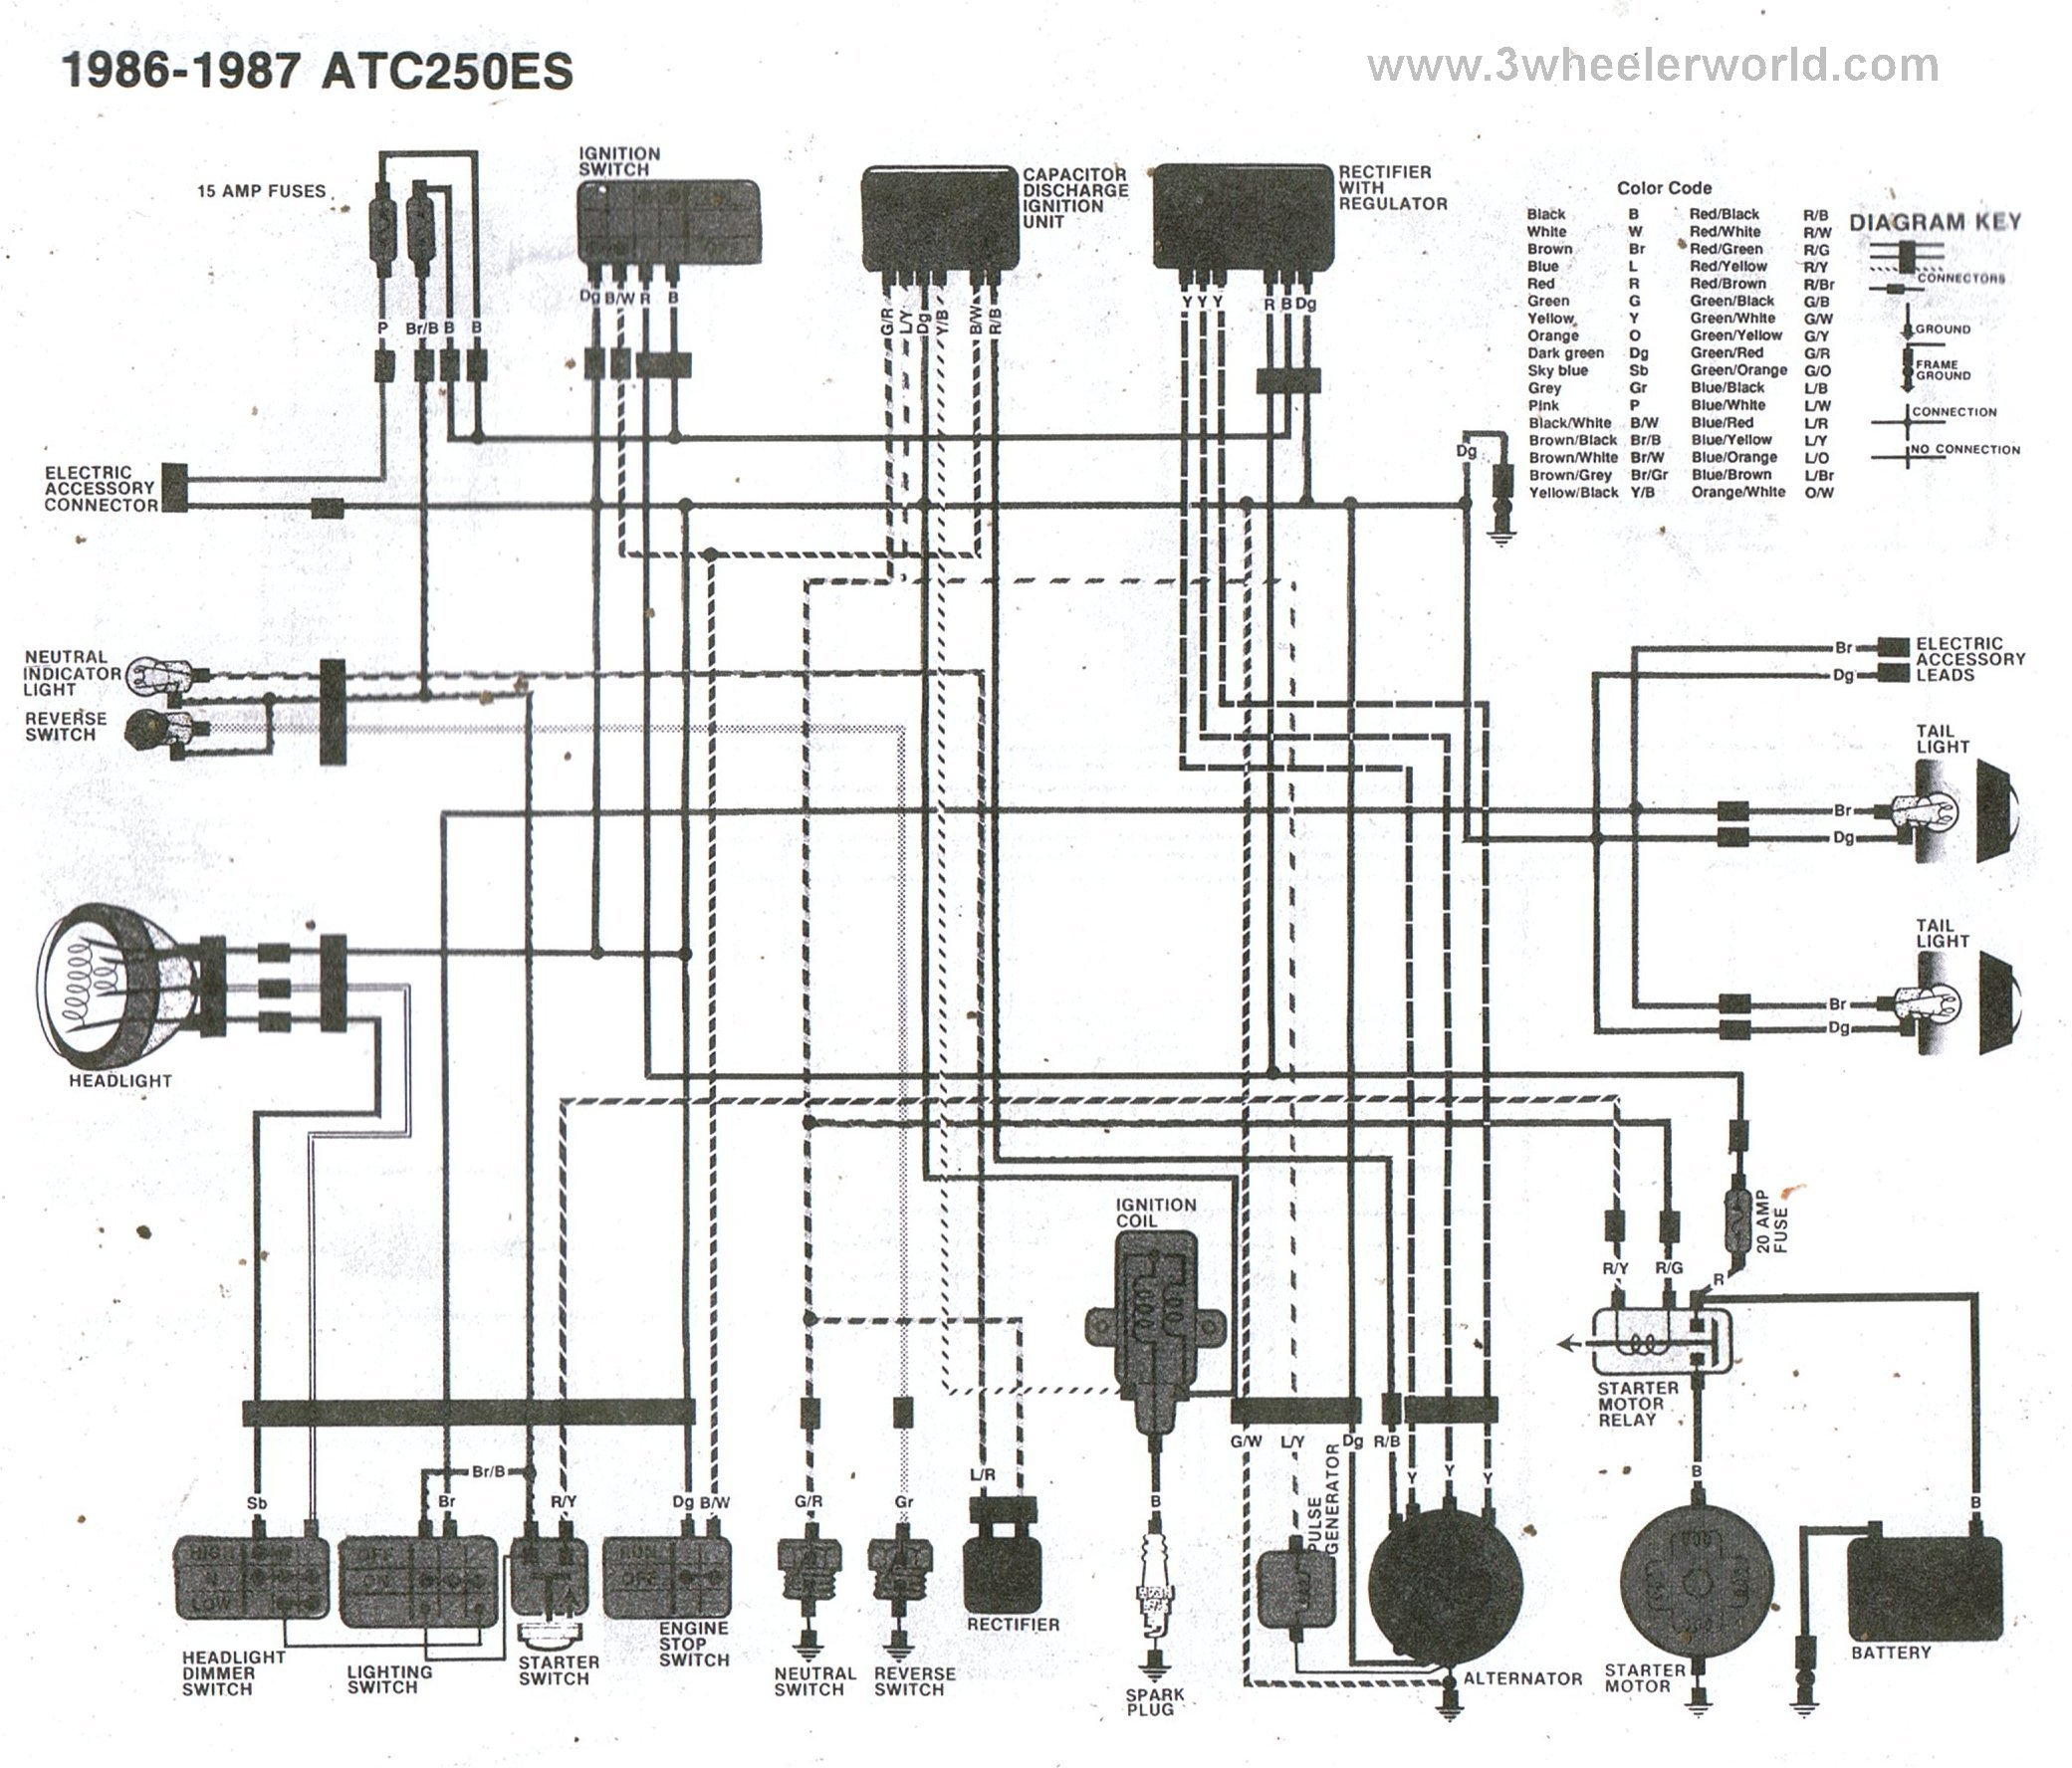 Honda 400ex Wiring Diagram List Of Schematic Circuit Diagram \u2022 2013  Honda TRX 400 Honda Trx 400 Ex Wiring Diagram Schematic